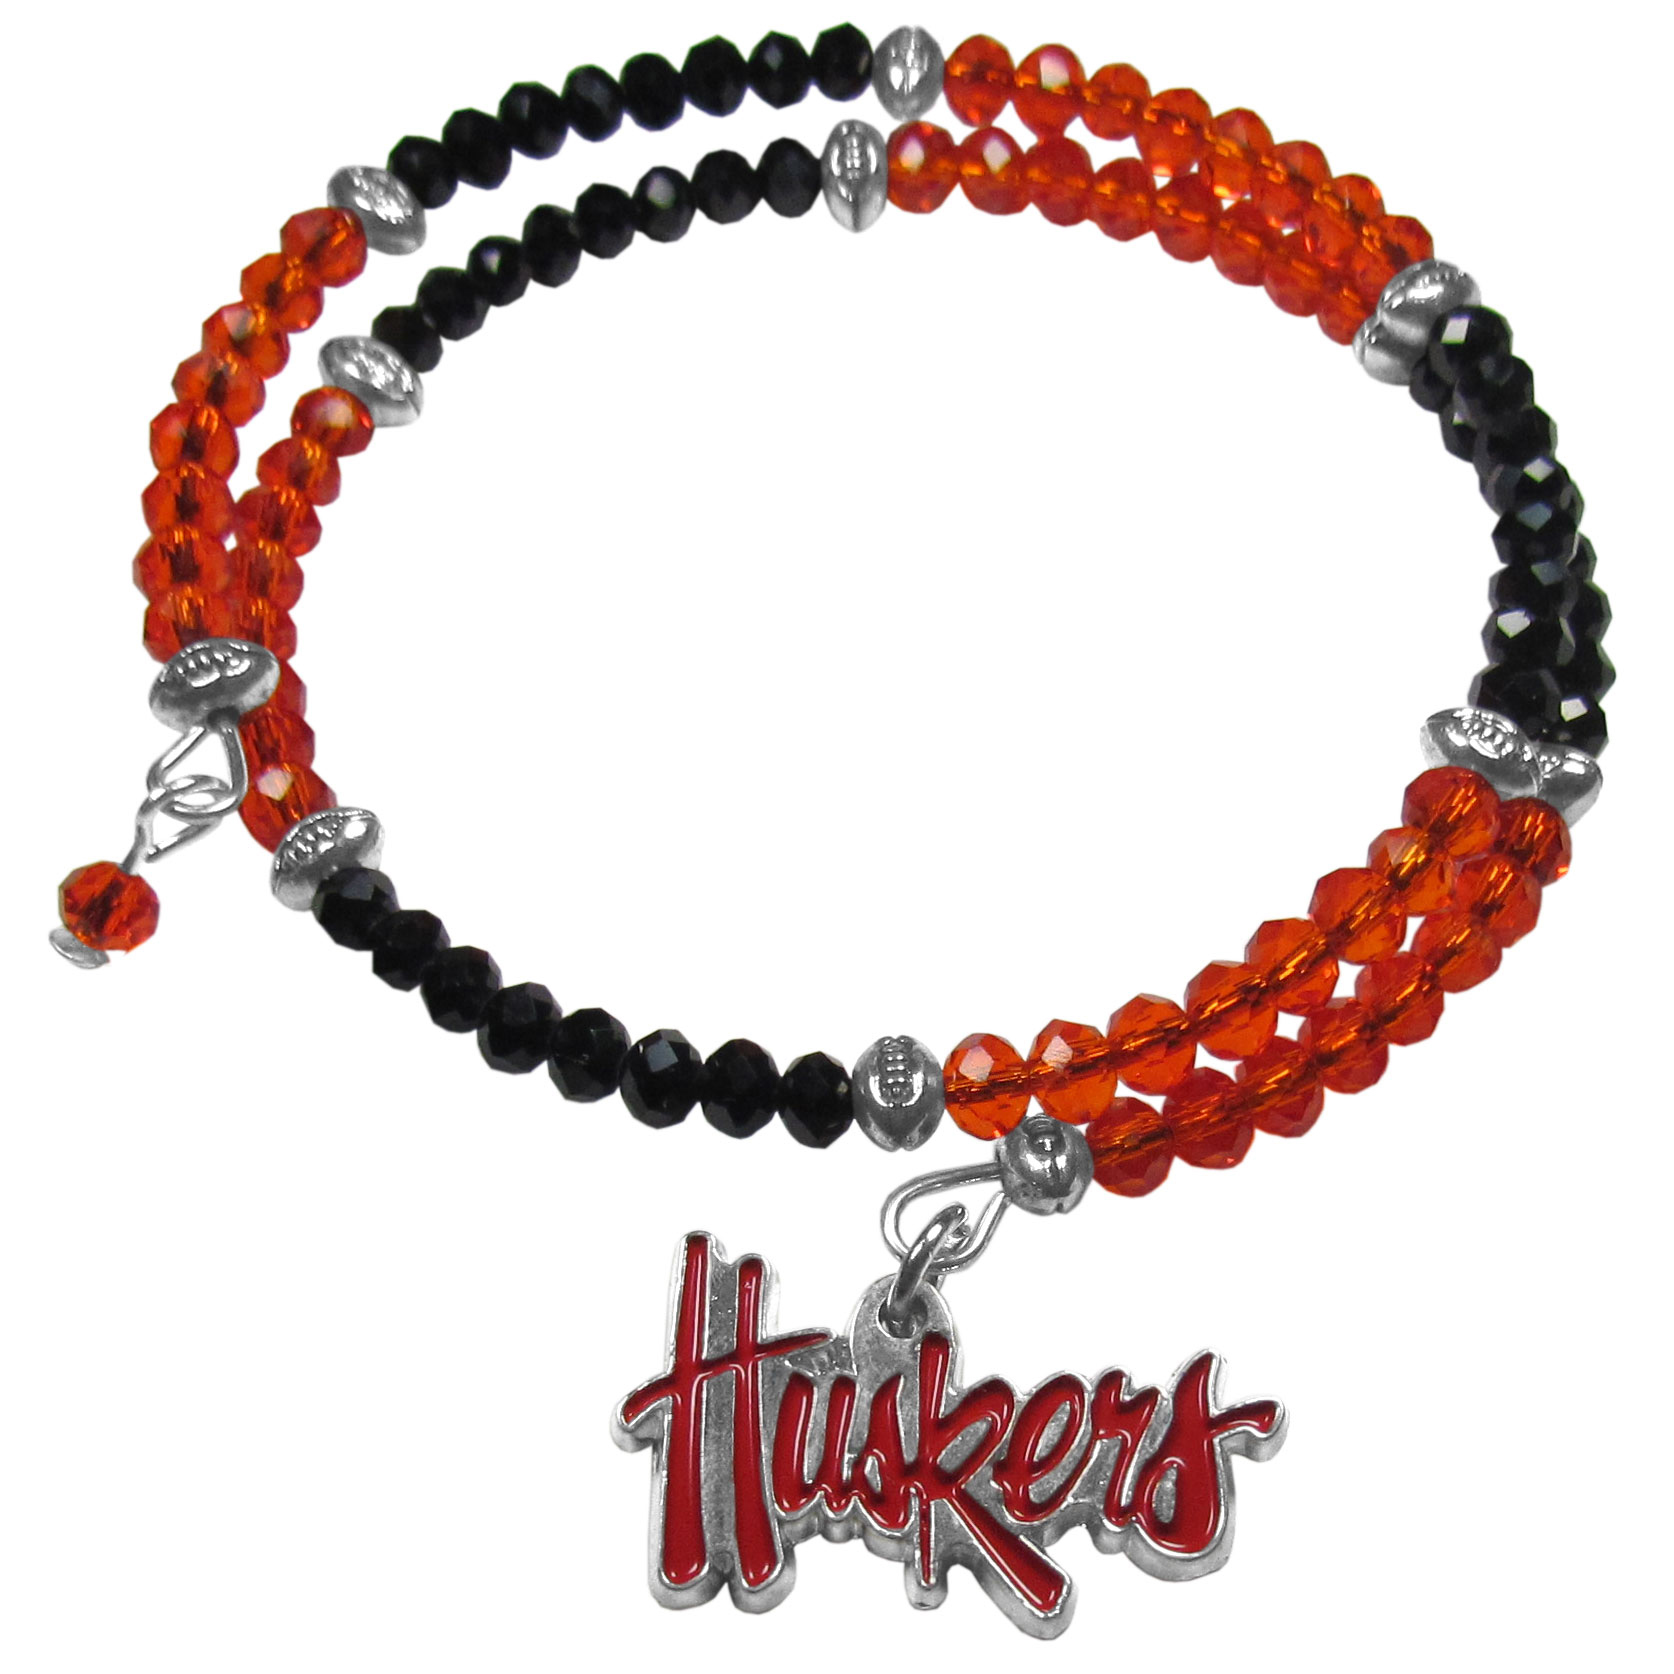 Nebraska Cornhuskers Crystal Memory Wire Bracelet - Our Nebraska Cornhuskers memory wire crystal bracelet is trendy way to show off your love of the game. The double wrap bracelet is completely covered in 4 mm crystals that are broken up with adorable football beads creating a designer look with a sporty twist. The bracelet features a fully cast, metal team charm that has expertly enameled team colors. This fashion jewelry piece is a must-have for the die-hard fan that chic look that can dress up any outfit.